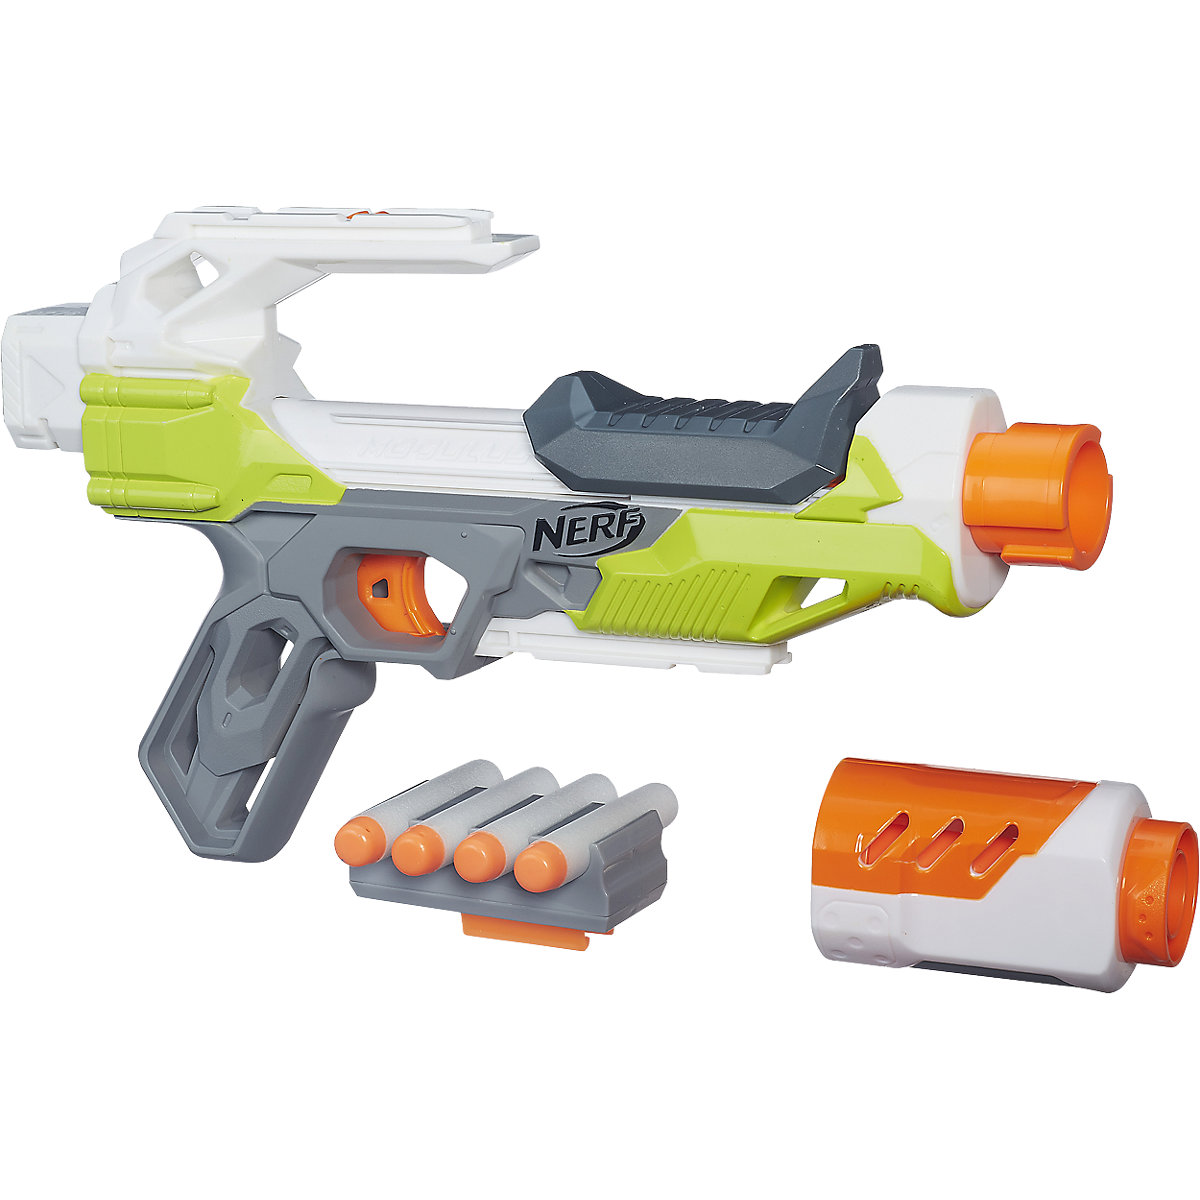 Toy Guns NERF 4306449 Children Kids Toy Gun Weapon Blasters Boys Shooting games Outdoor play new summer water sports baby kids inflatable swimming pool pvc portable swim family play pool children bath tub kids toy